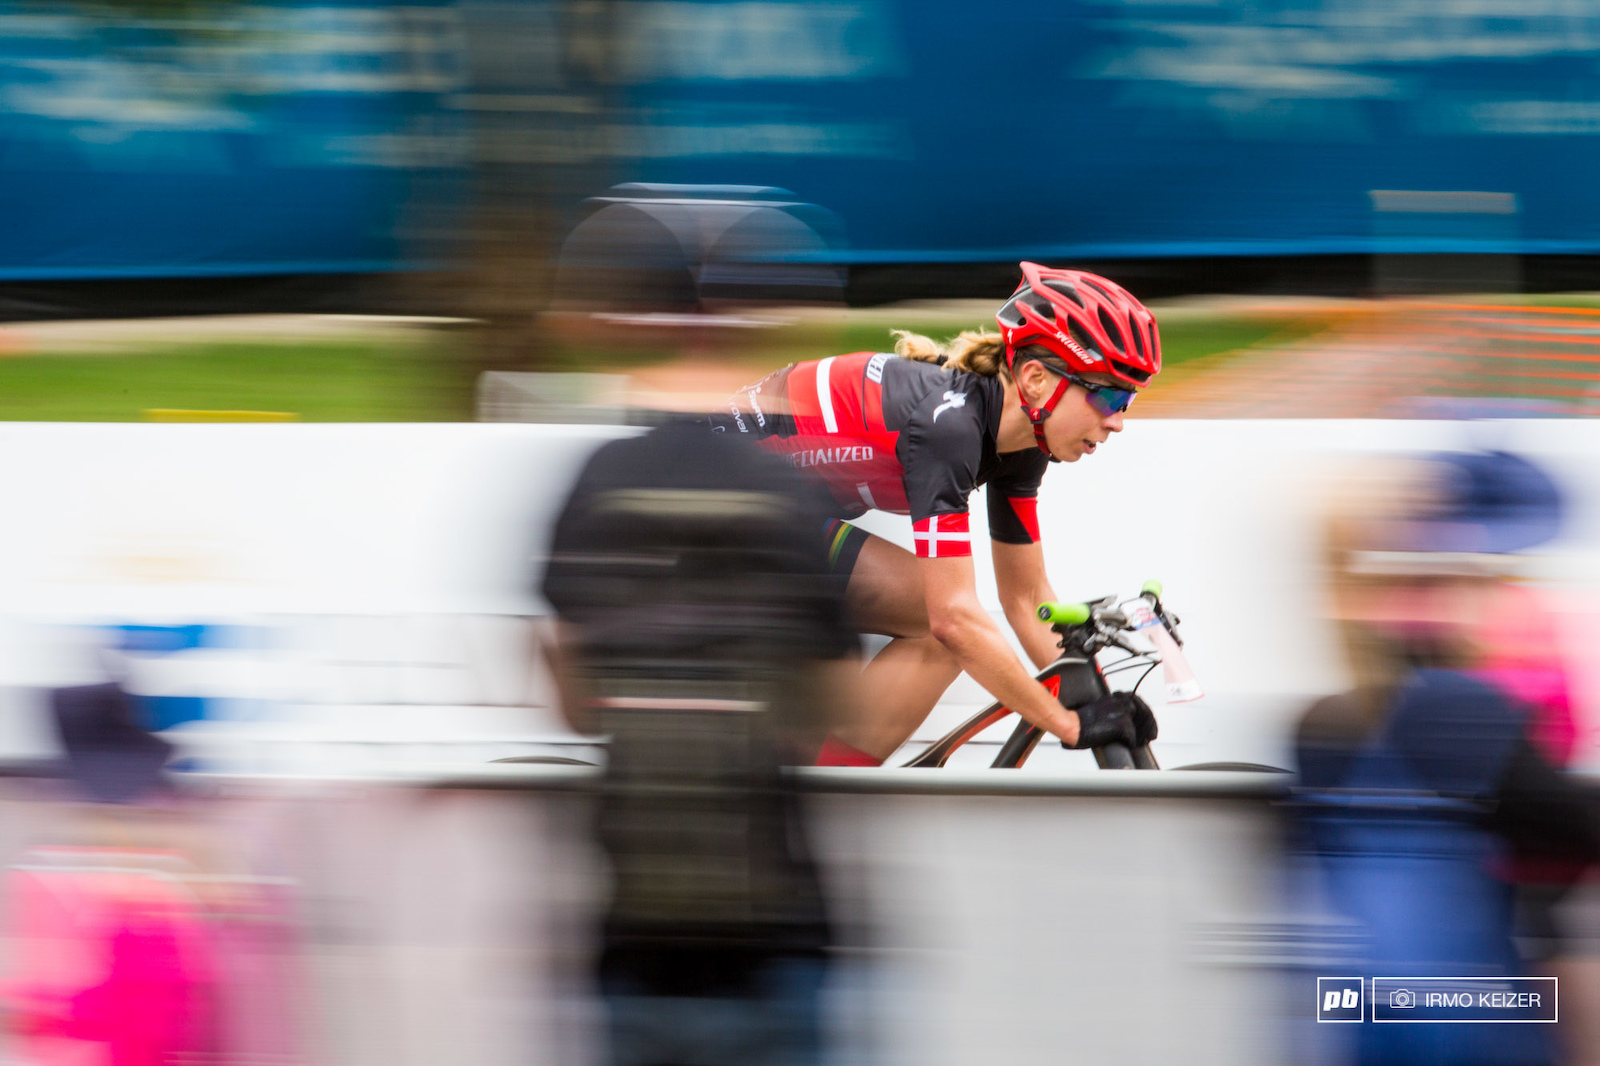 Annika Langvad going into her final lap taking no chances and aero-tucking it all the way down the finish straight.